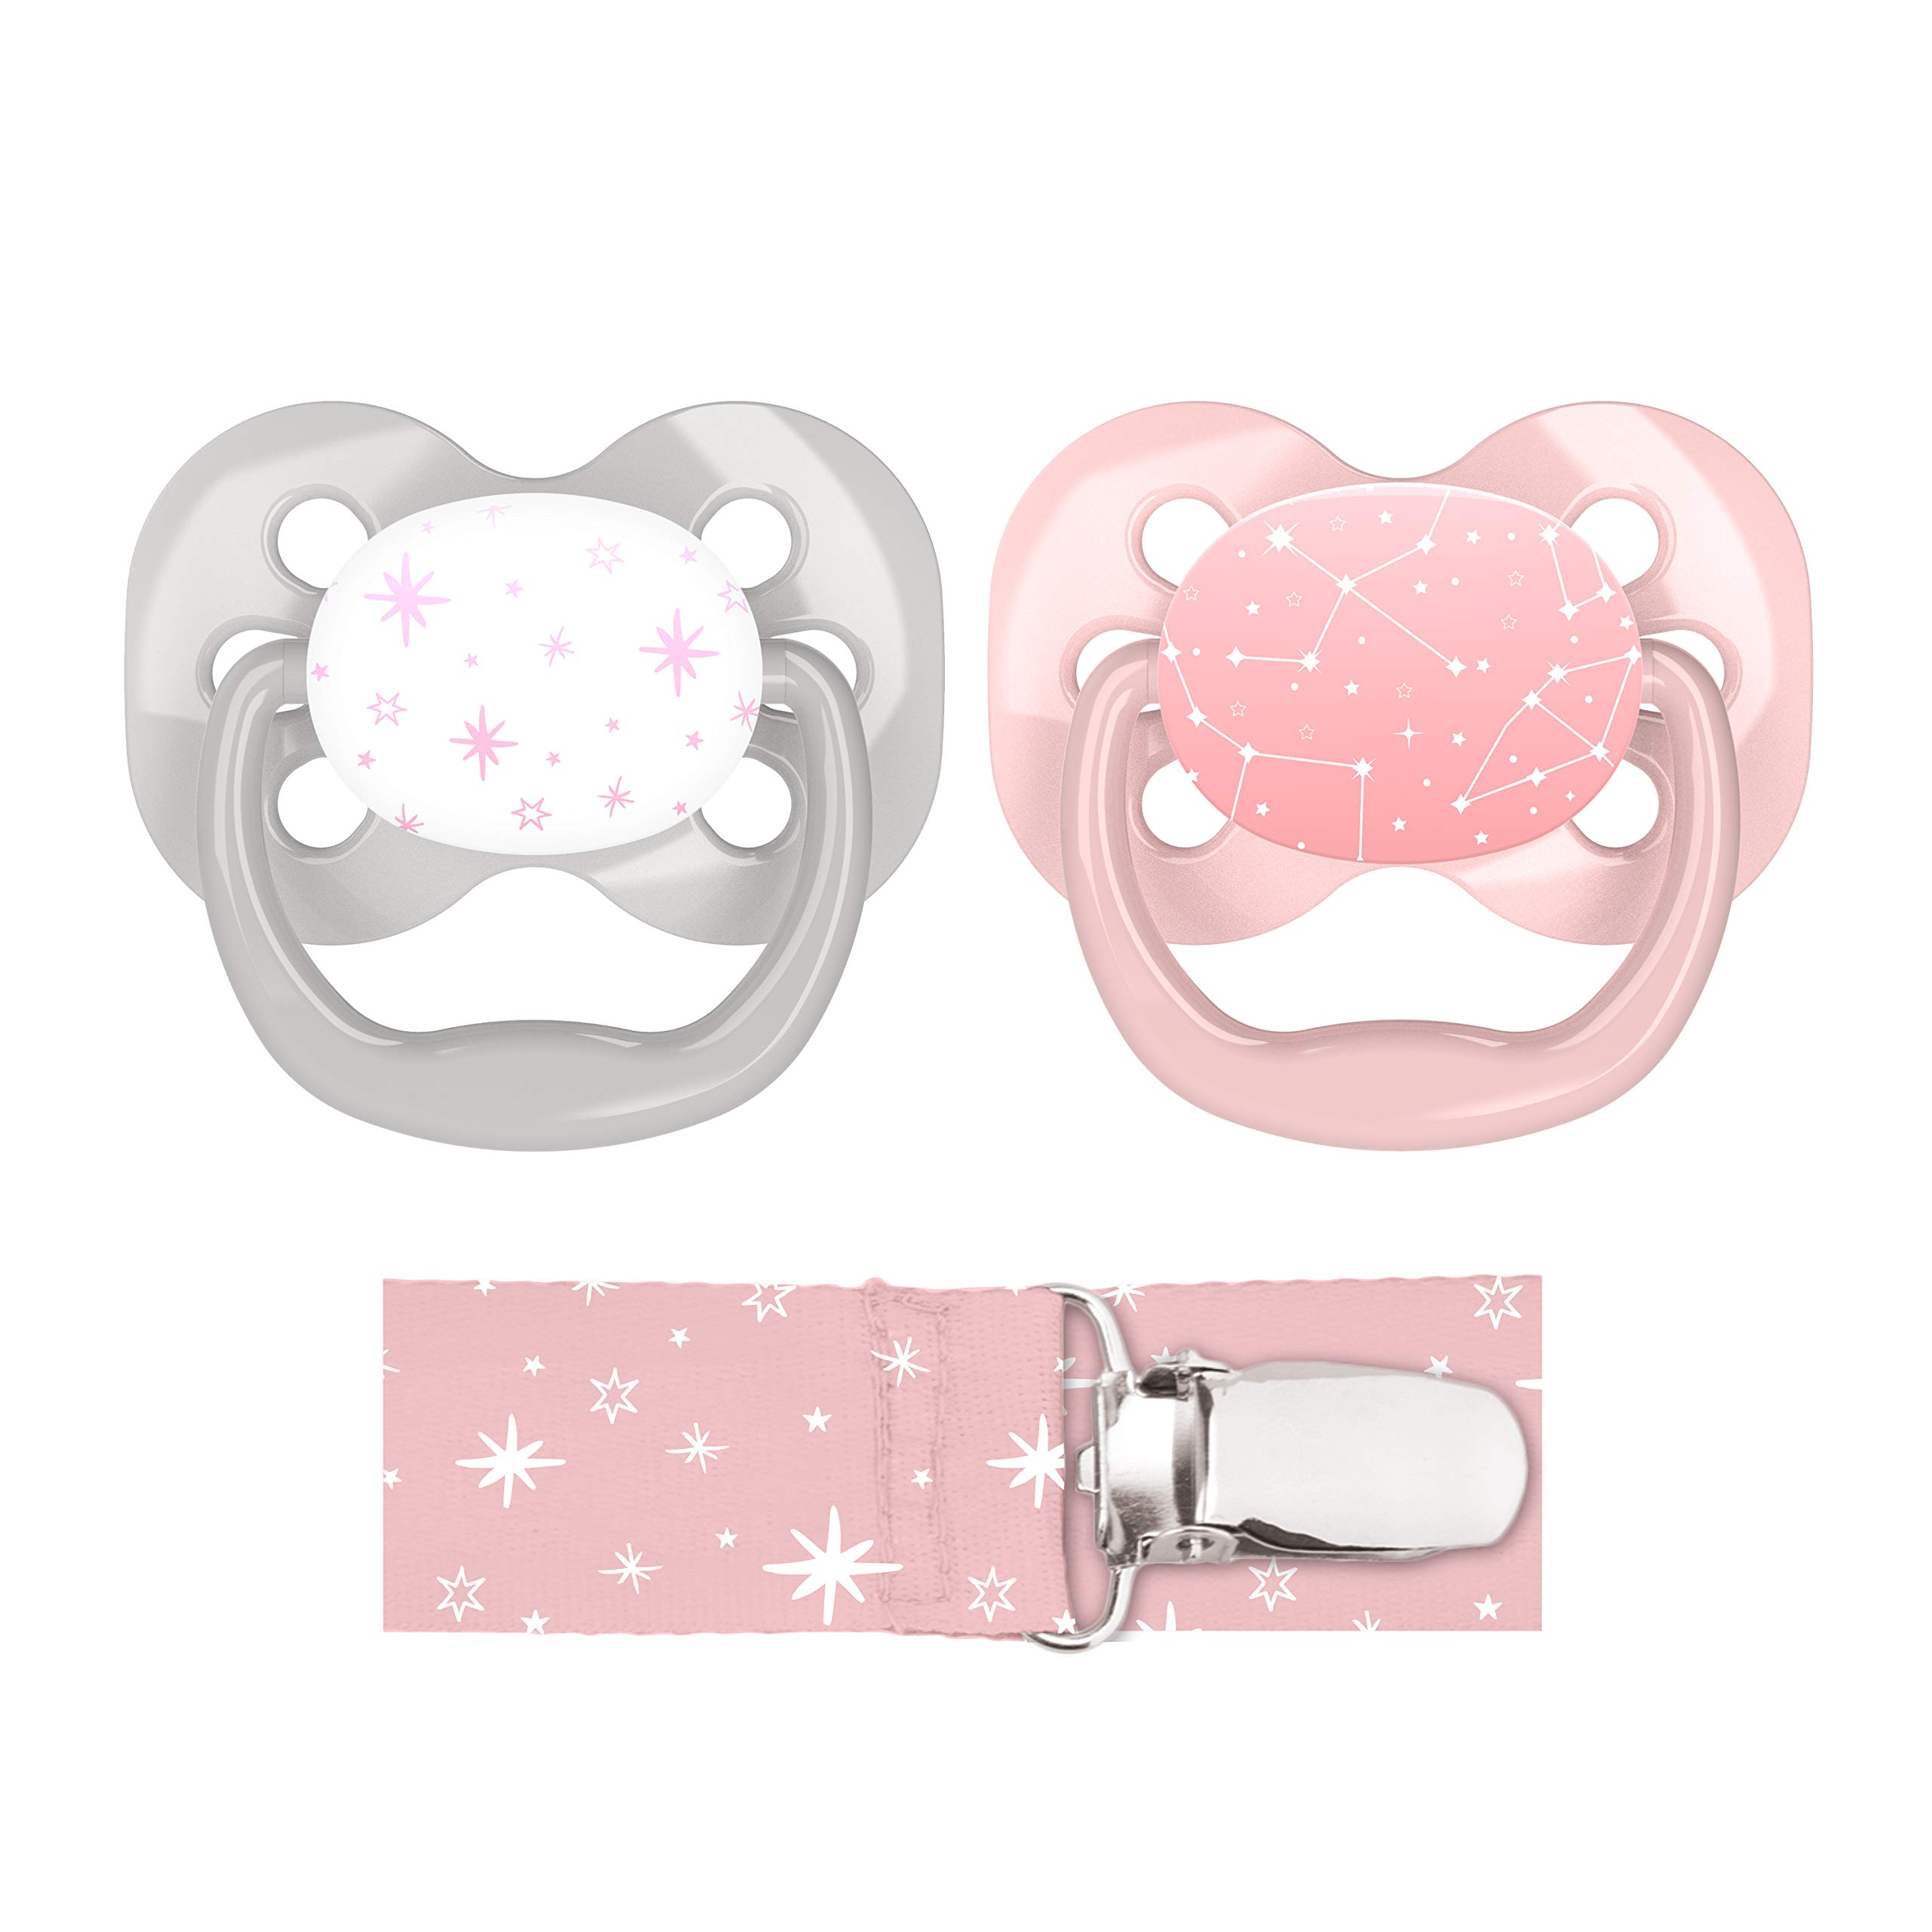 Amazon.com : Dr. Browns Advantage Pacifier with Pacifier ...